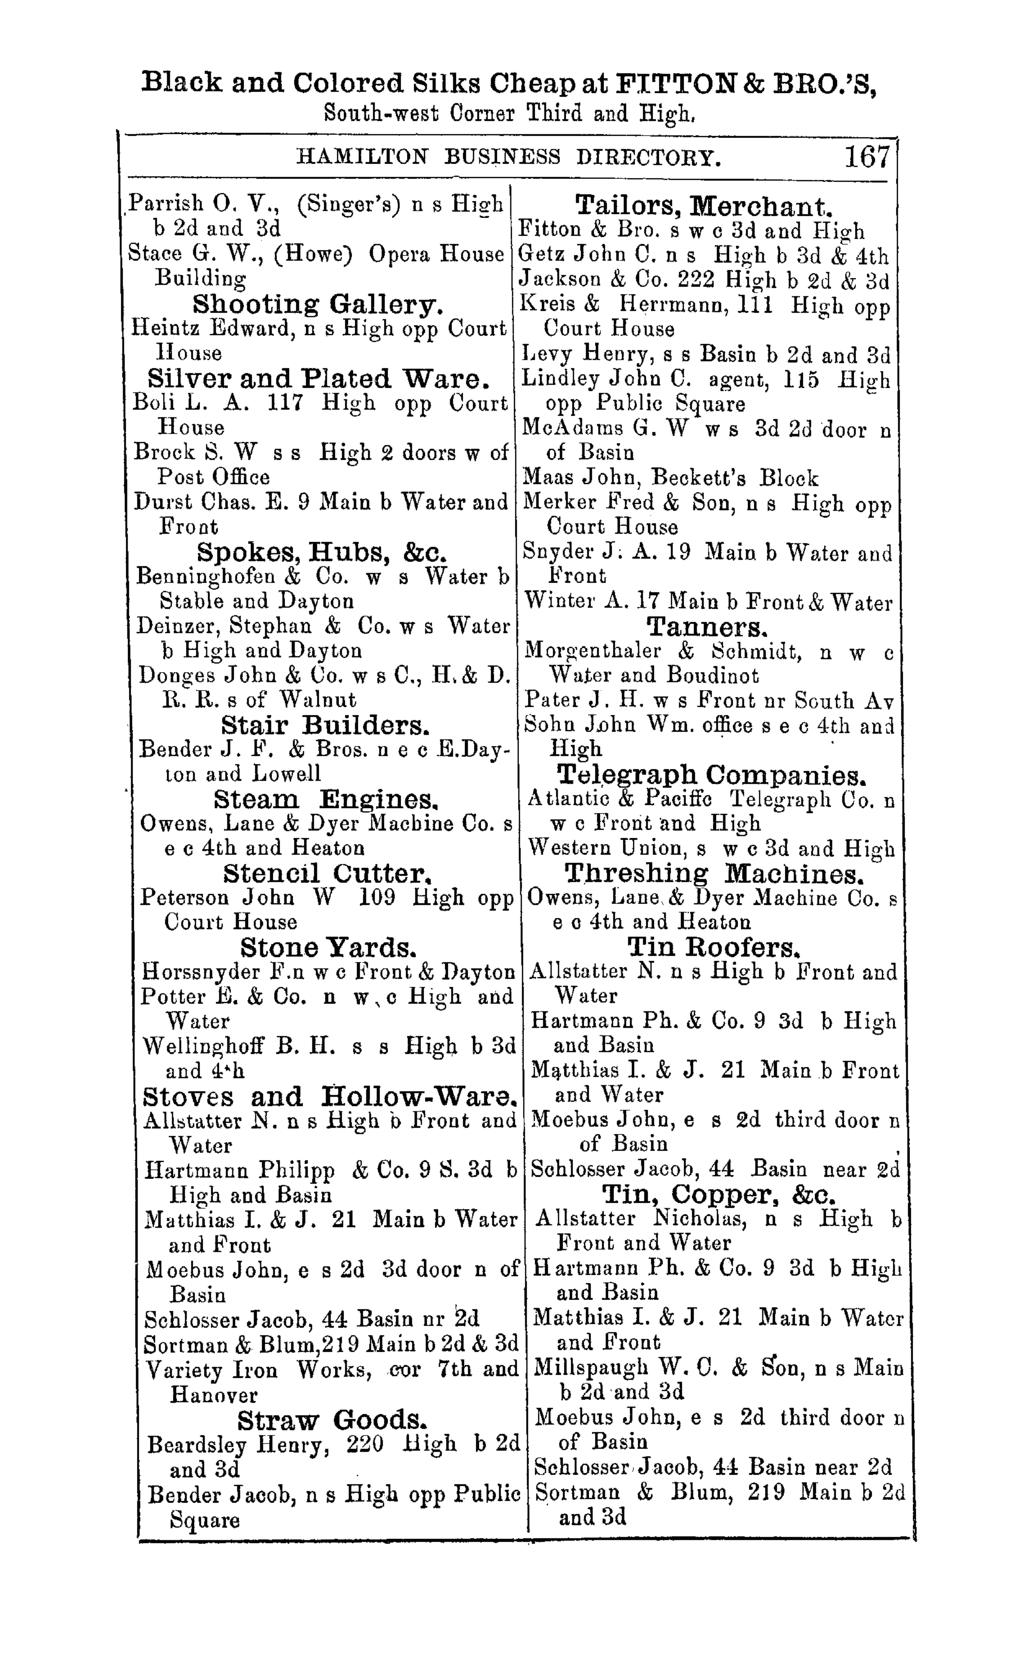 Black and Colored Silks Cheap at FITTON & BRO.'S, South-west Oorner Third and High. HAMILTON BUSINESS DIRECTORY. 167 Tailors, Merchant.,Parrish O. V., (Singer's) n s High b 2d and 3d Fitton & Bro.